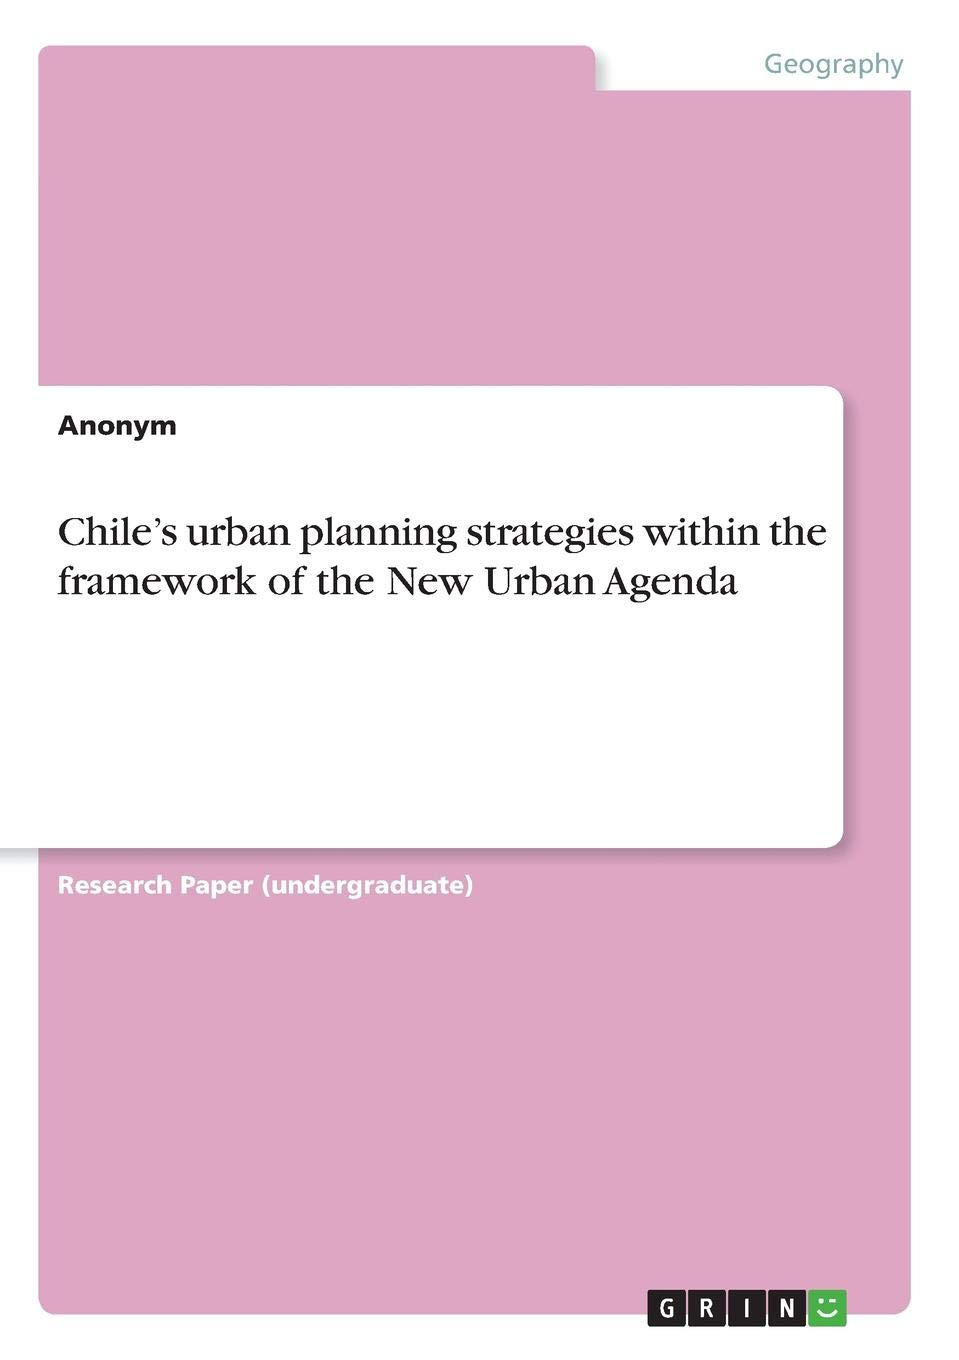 Chiles urban planning strategies within the framework of ...